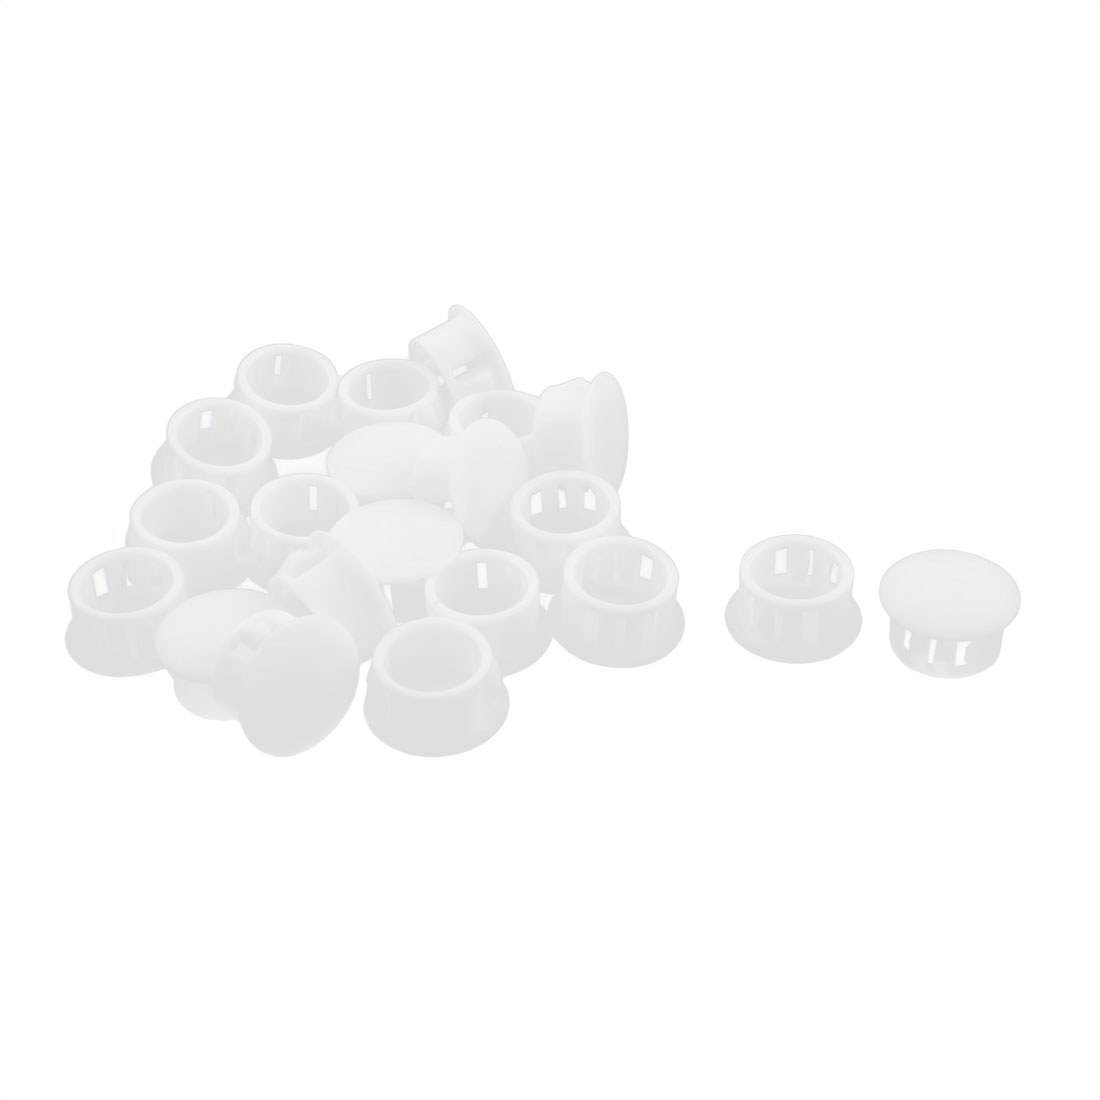 20Pcs SKT-16 Insulated White Plastic Snap in Mounting Locking Hole Plug Harness Fastener Cover 16mm Dia